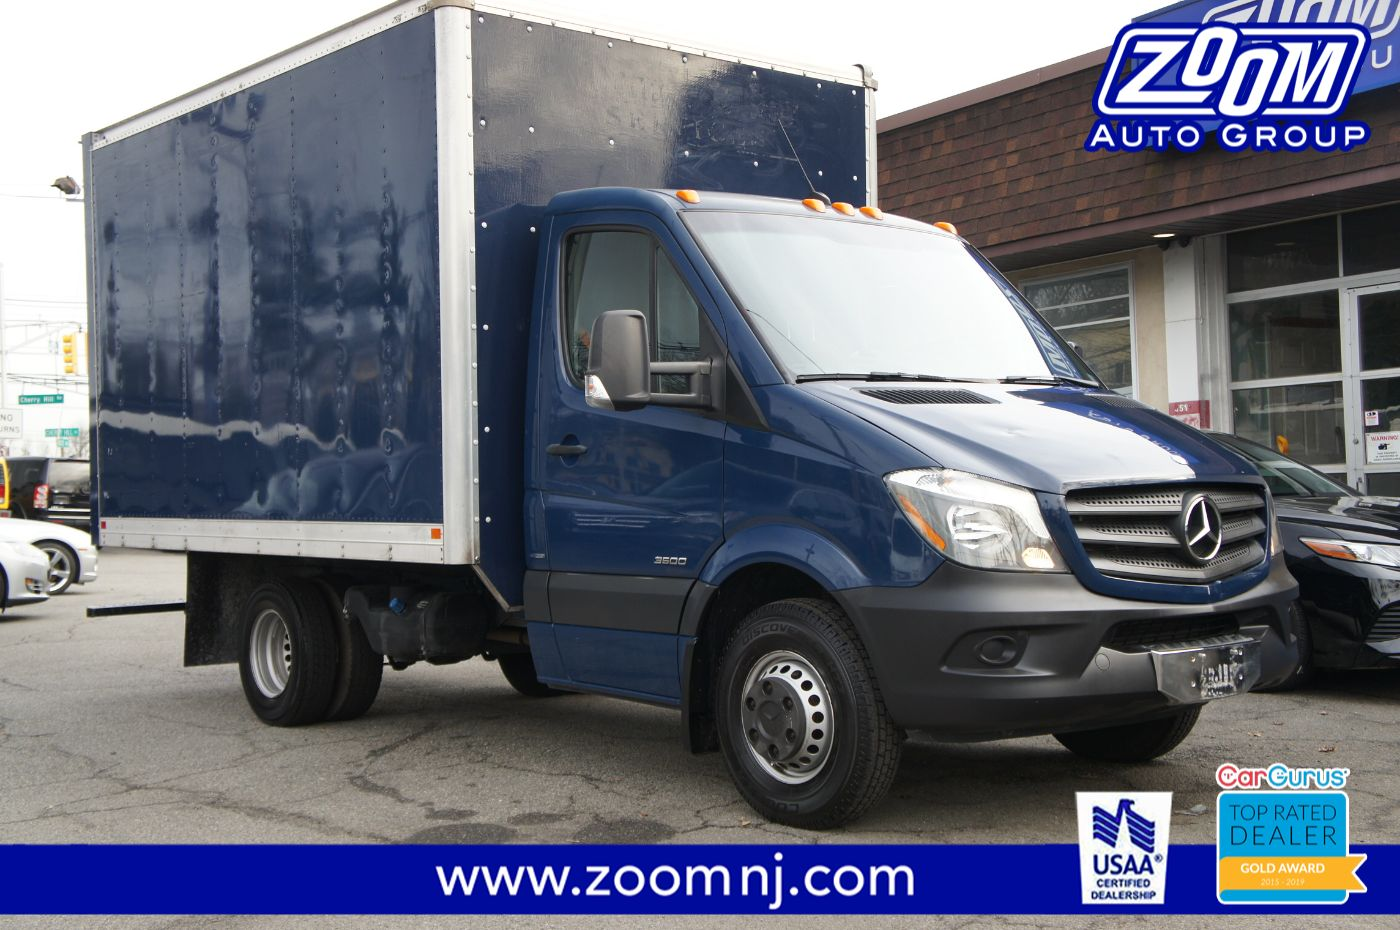 2014 Mercedes-Benz Sprinter Chassis-Cabs 3500